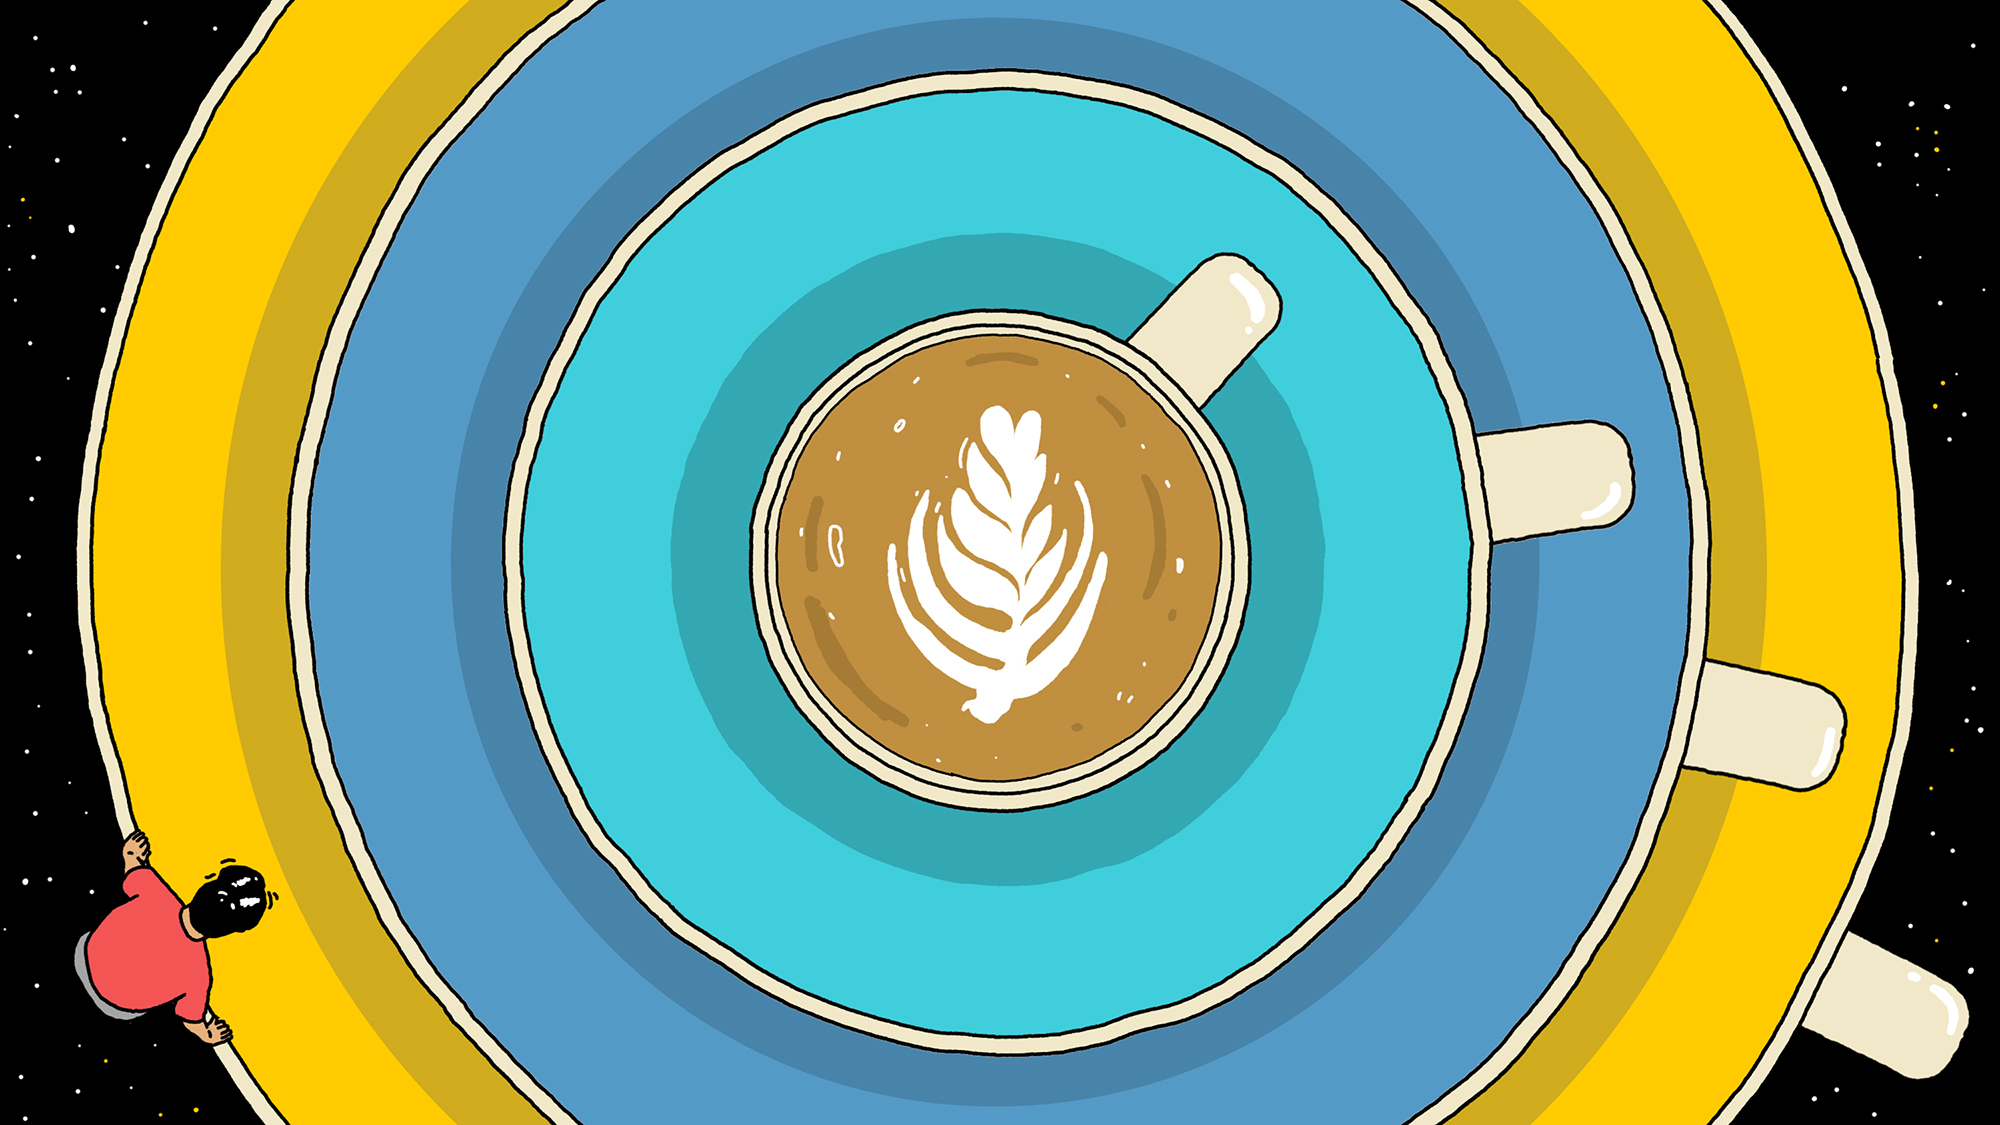 An illustration of a flat white